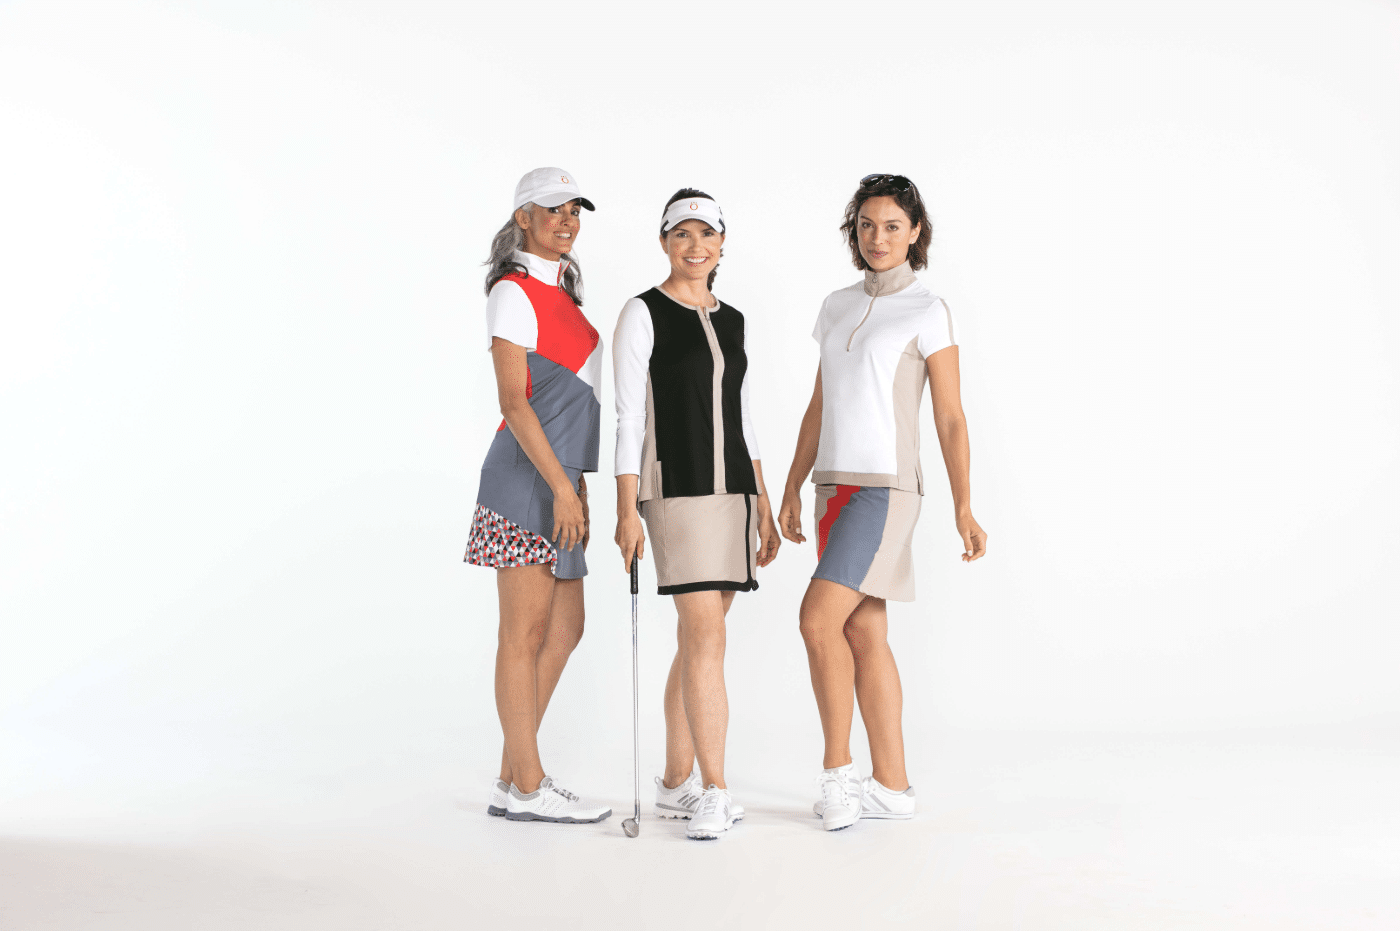 KINONA Women's Golf Apparel: 2020 Edition